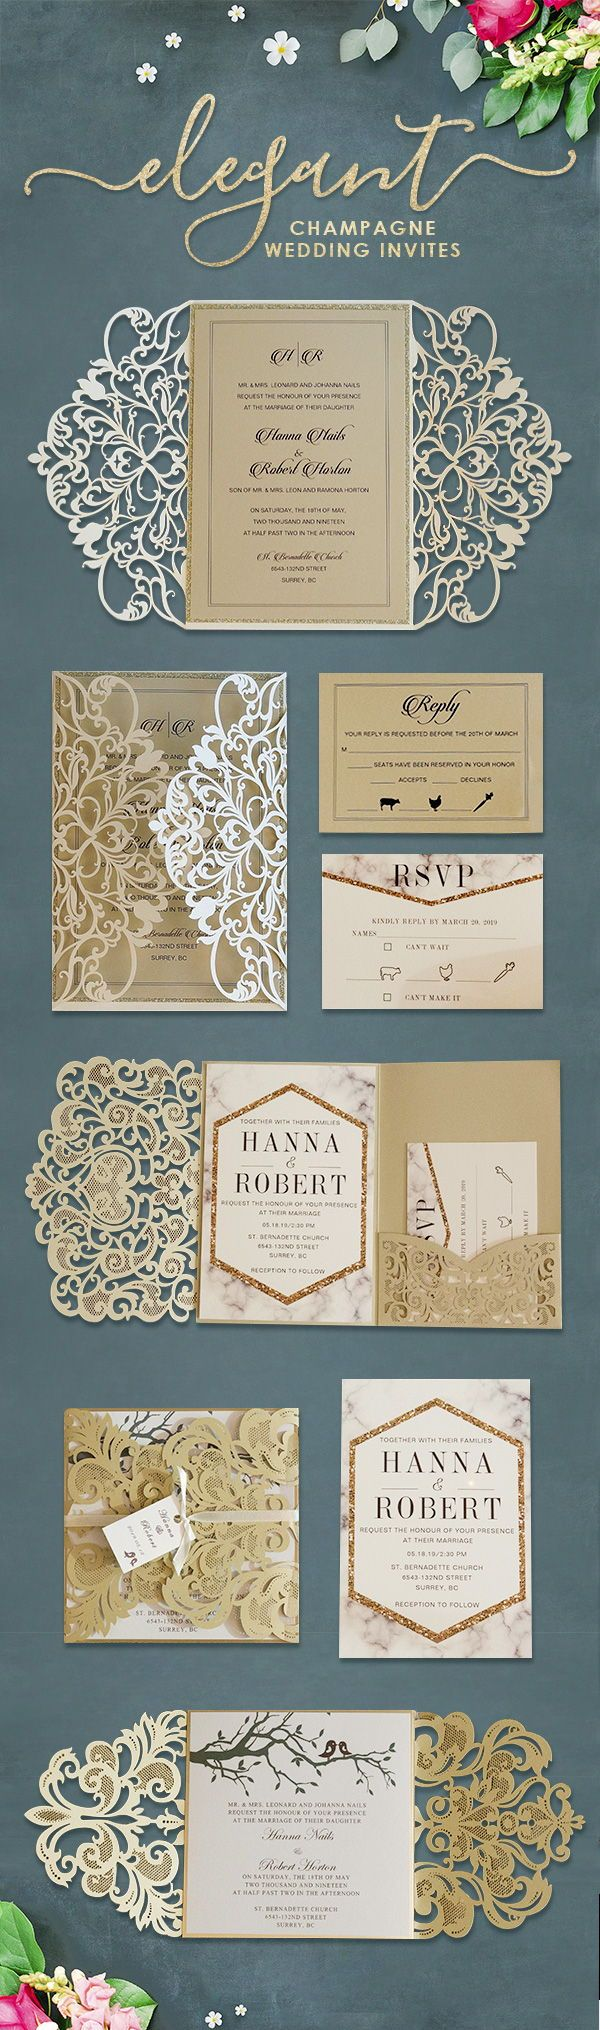 1476 Best Wedding Inspiration Images On Pinterest